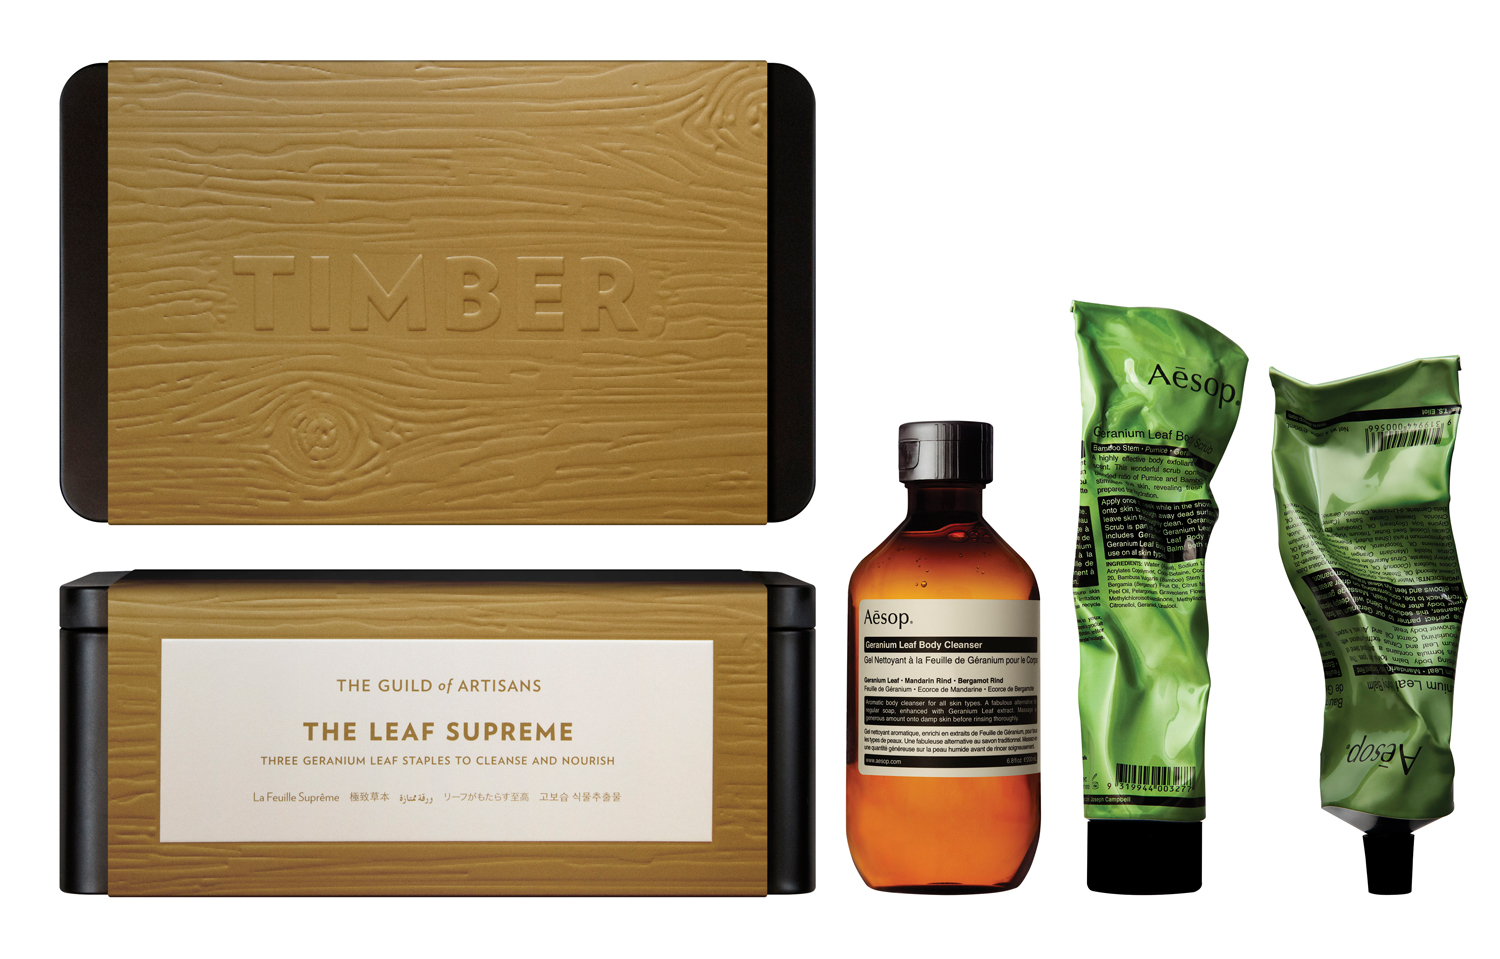 DF AESOP GIFT KITS 2014-2015 THE LEAF SUPREME WITH PRODUCT (TIMBER) C.jpg